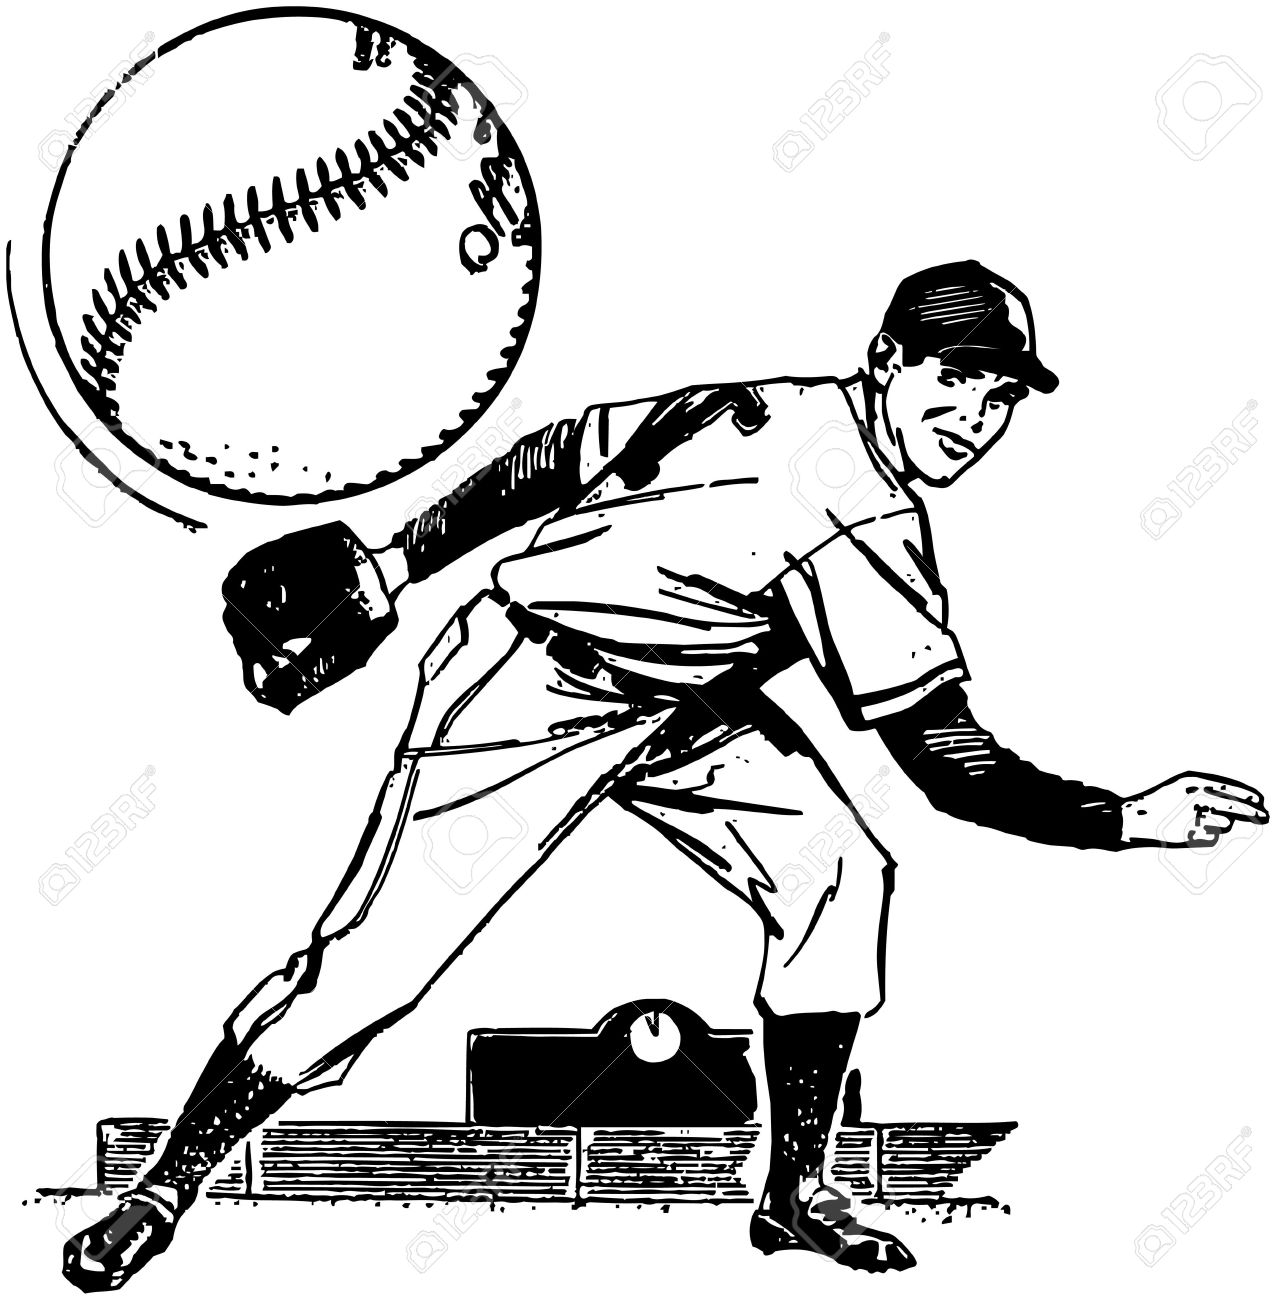 Baseball Pitcher.